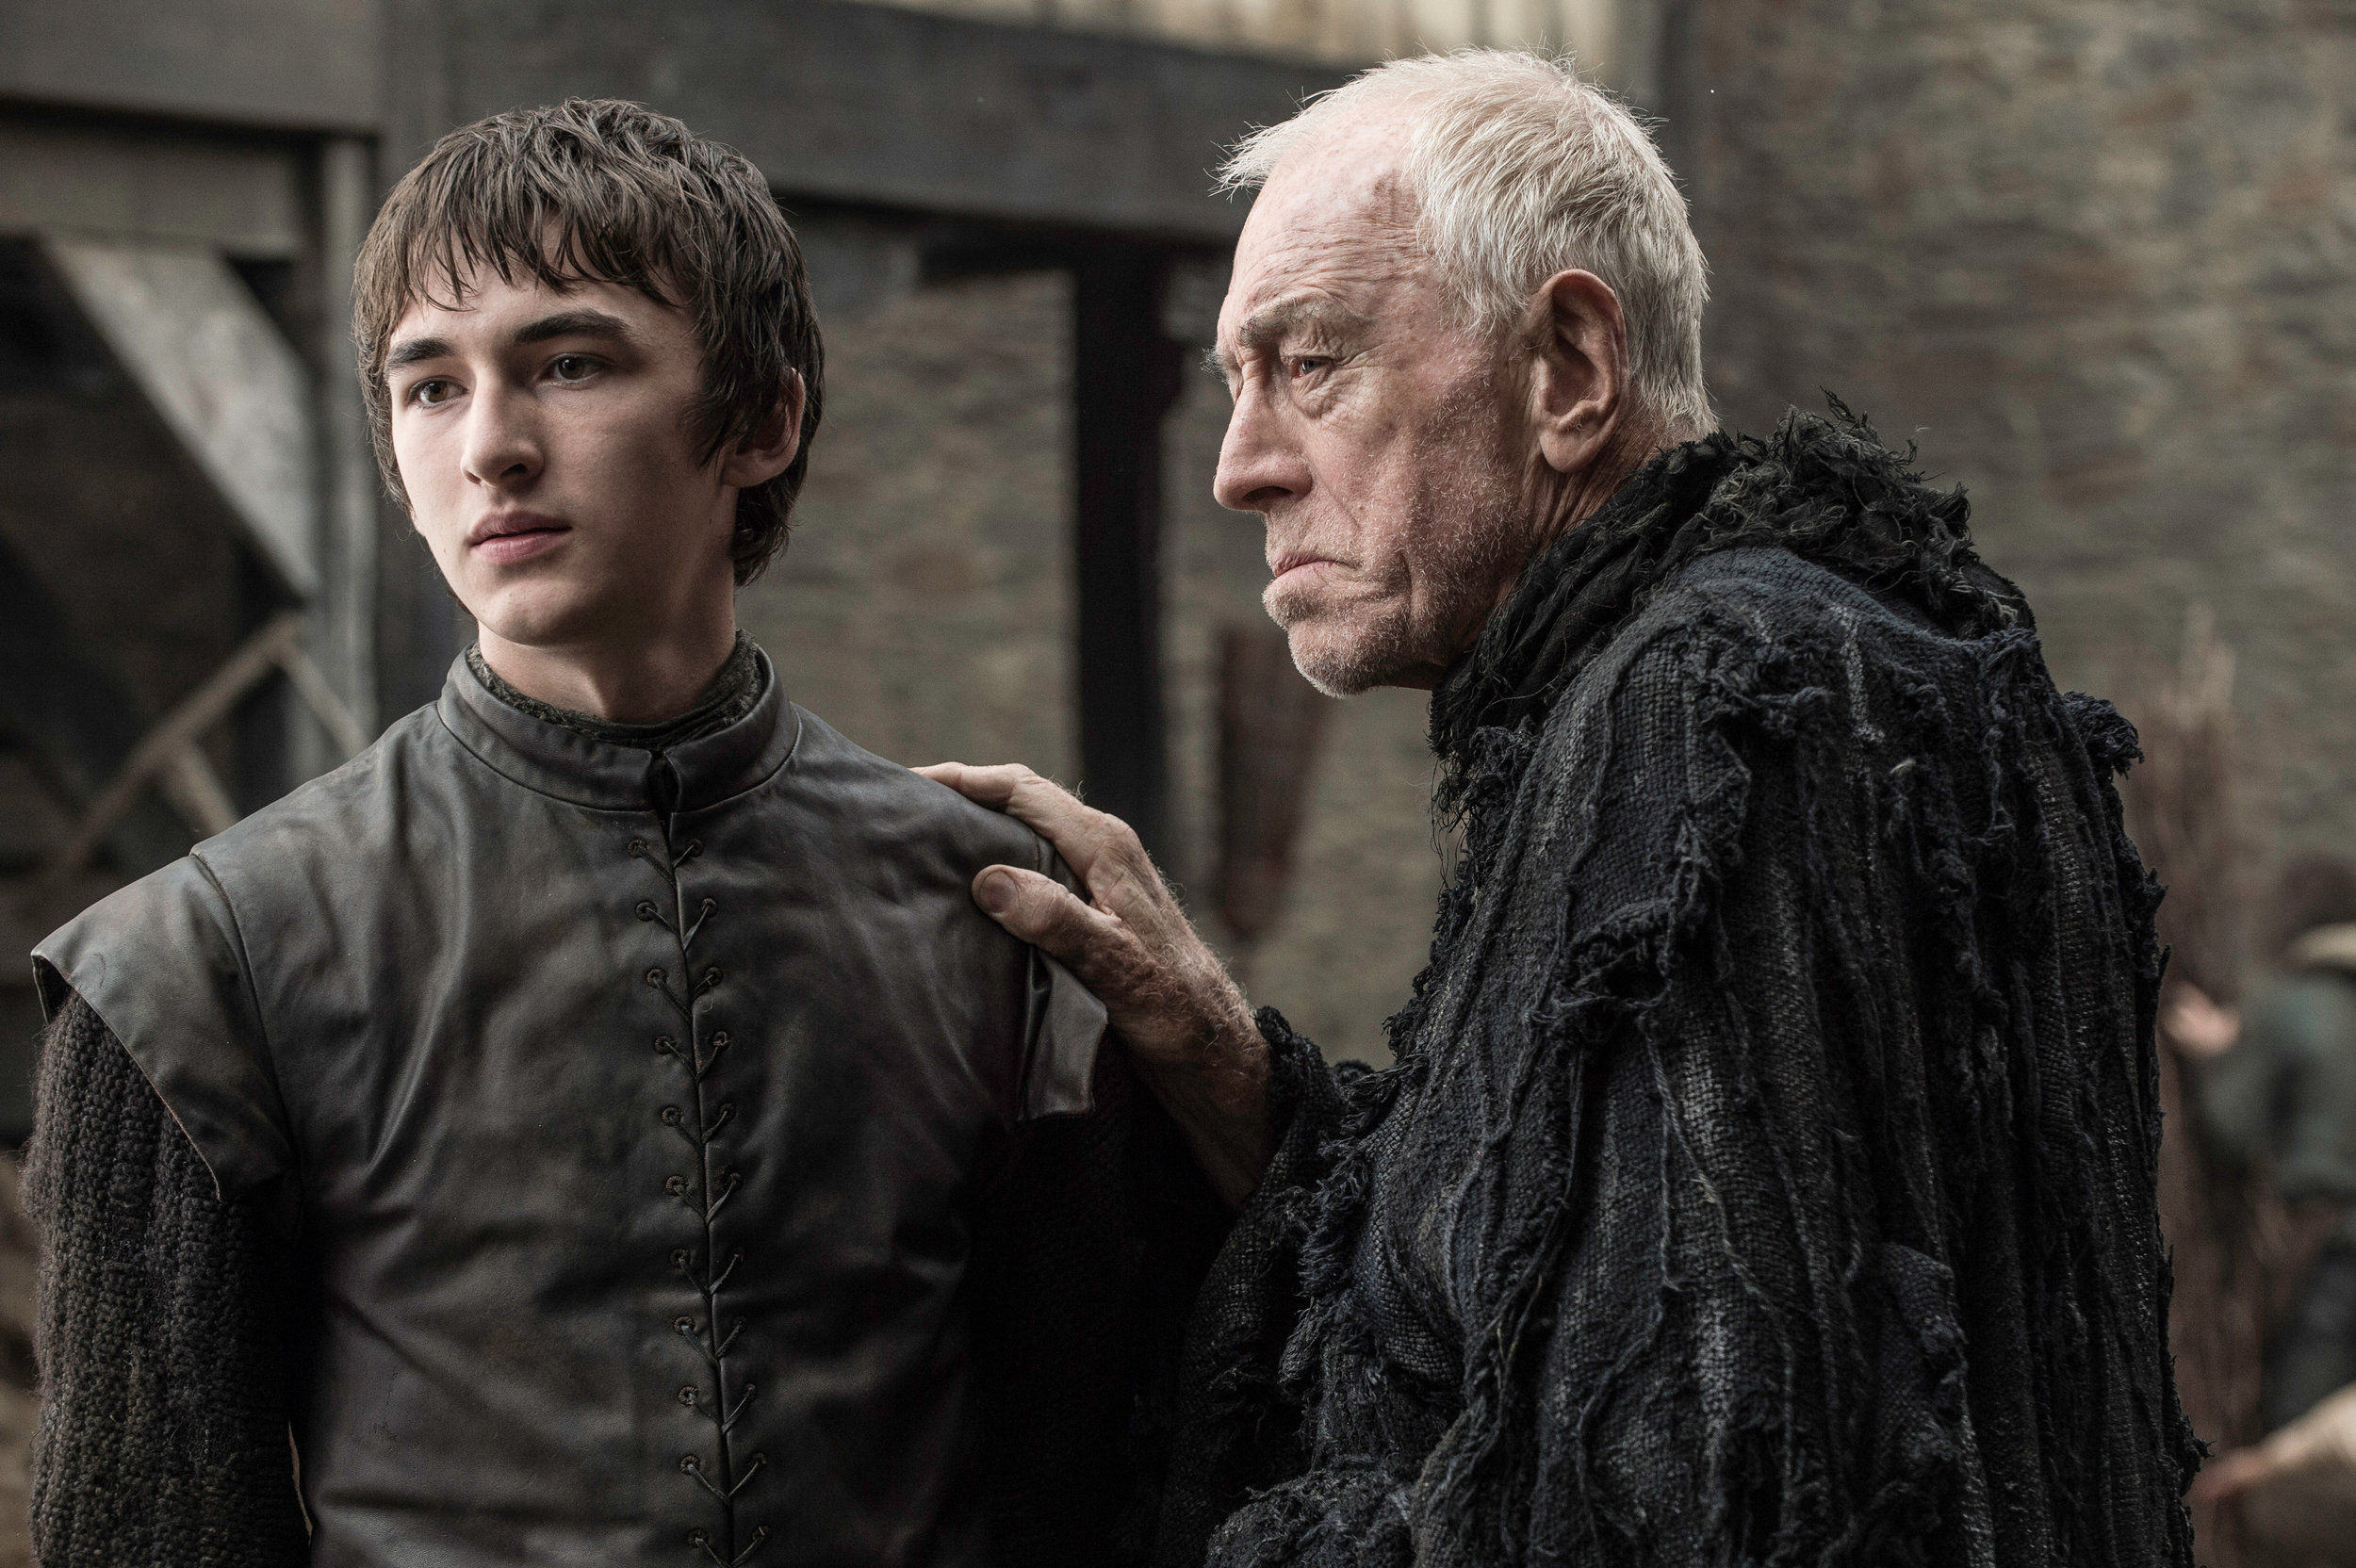 Isaac Hempstead-Wright as Bran Stark and Max von Sydow as the Three-Eyed Raven